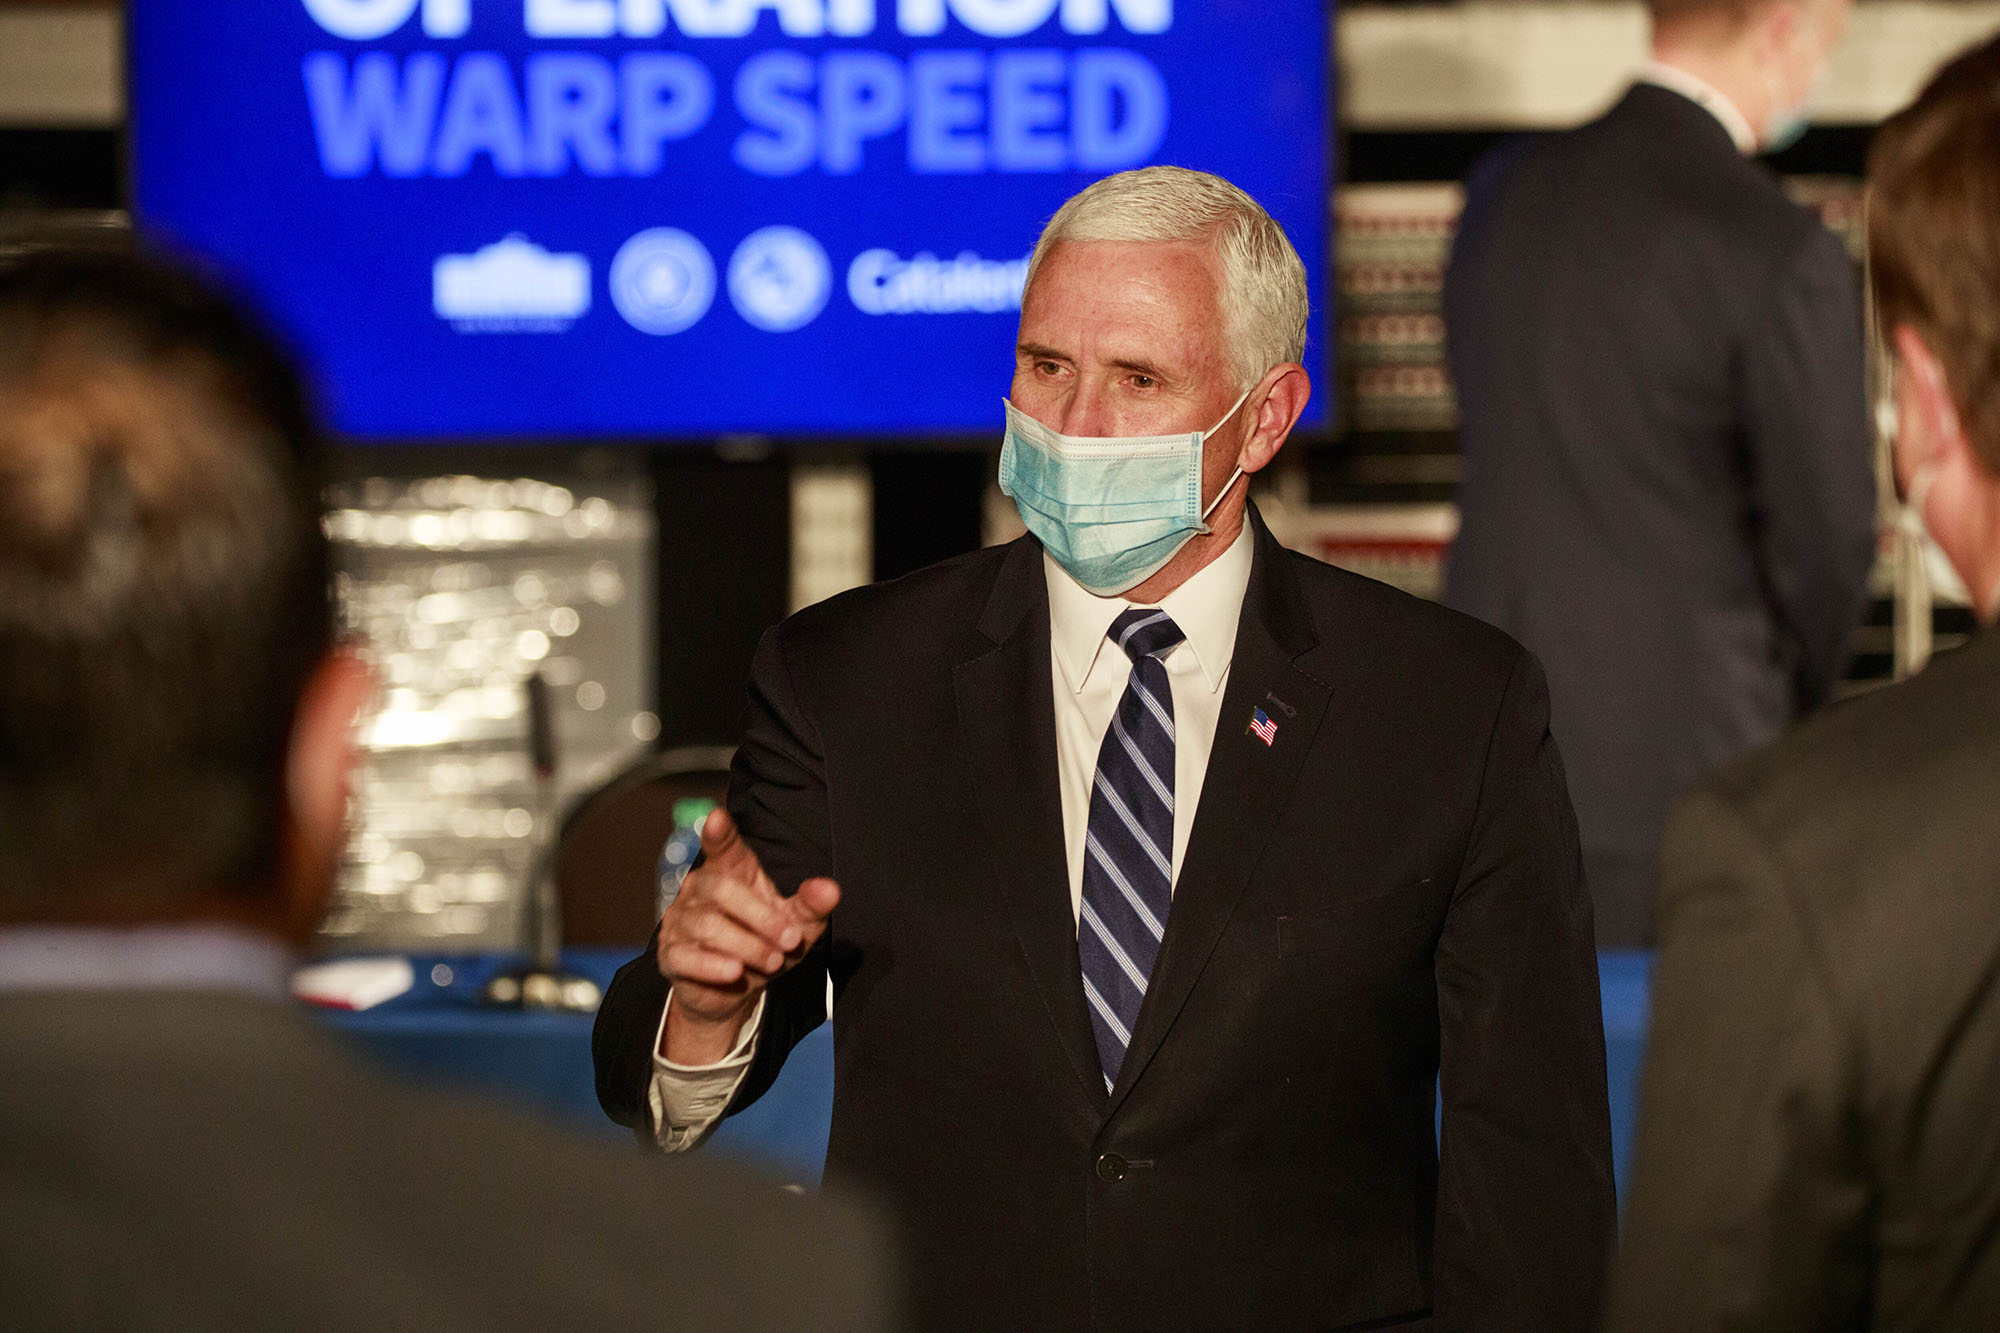 U.S. Vice President Mike Pence speaks during a round table discussion at Catalent Biologics, where COVID-19 vaccine vials are being filled.